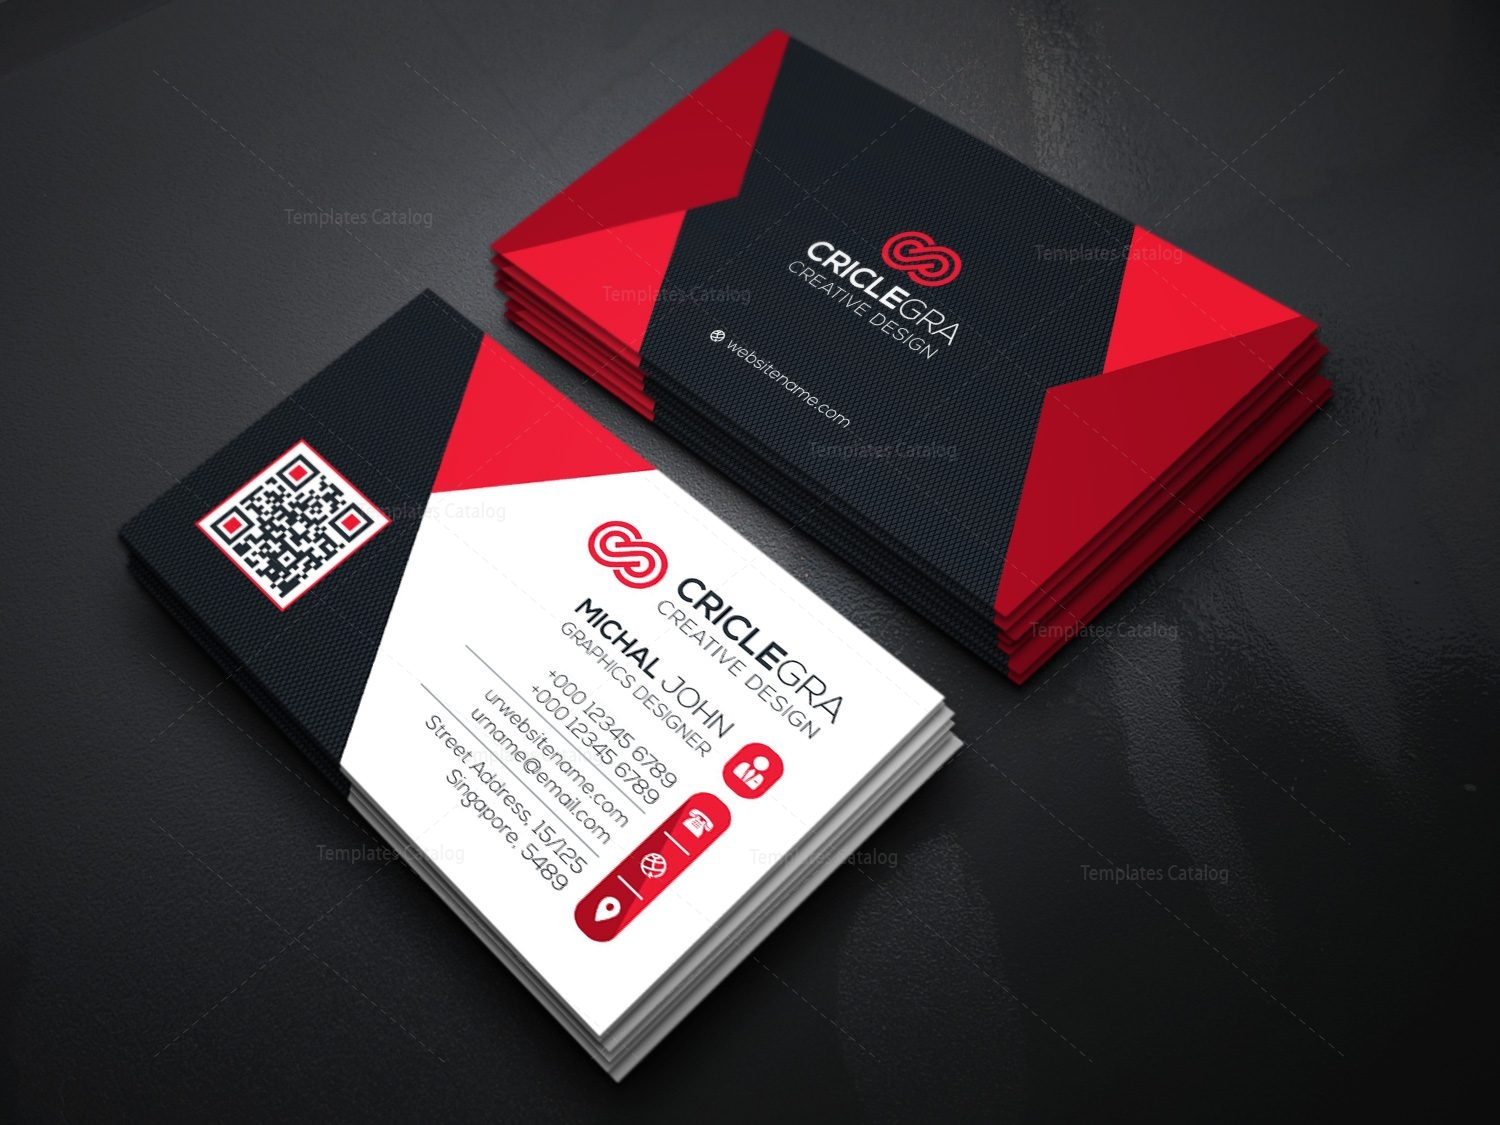 Elegant Visiting Card Template 000087 Template Catalog – Visiting Card